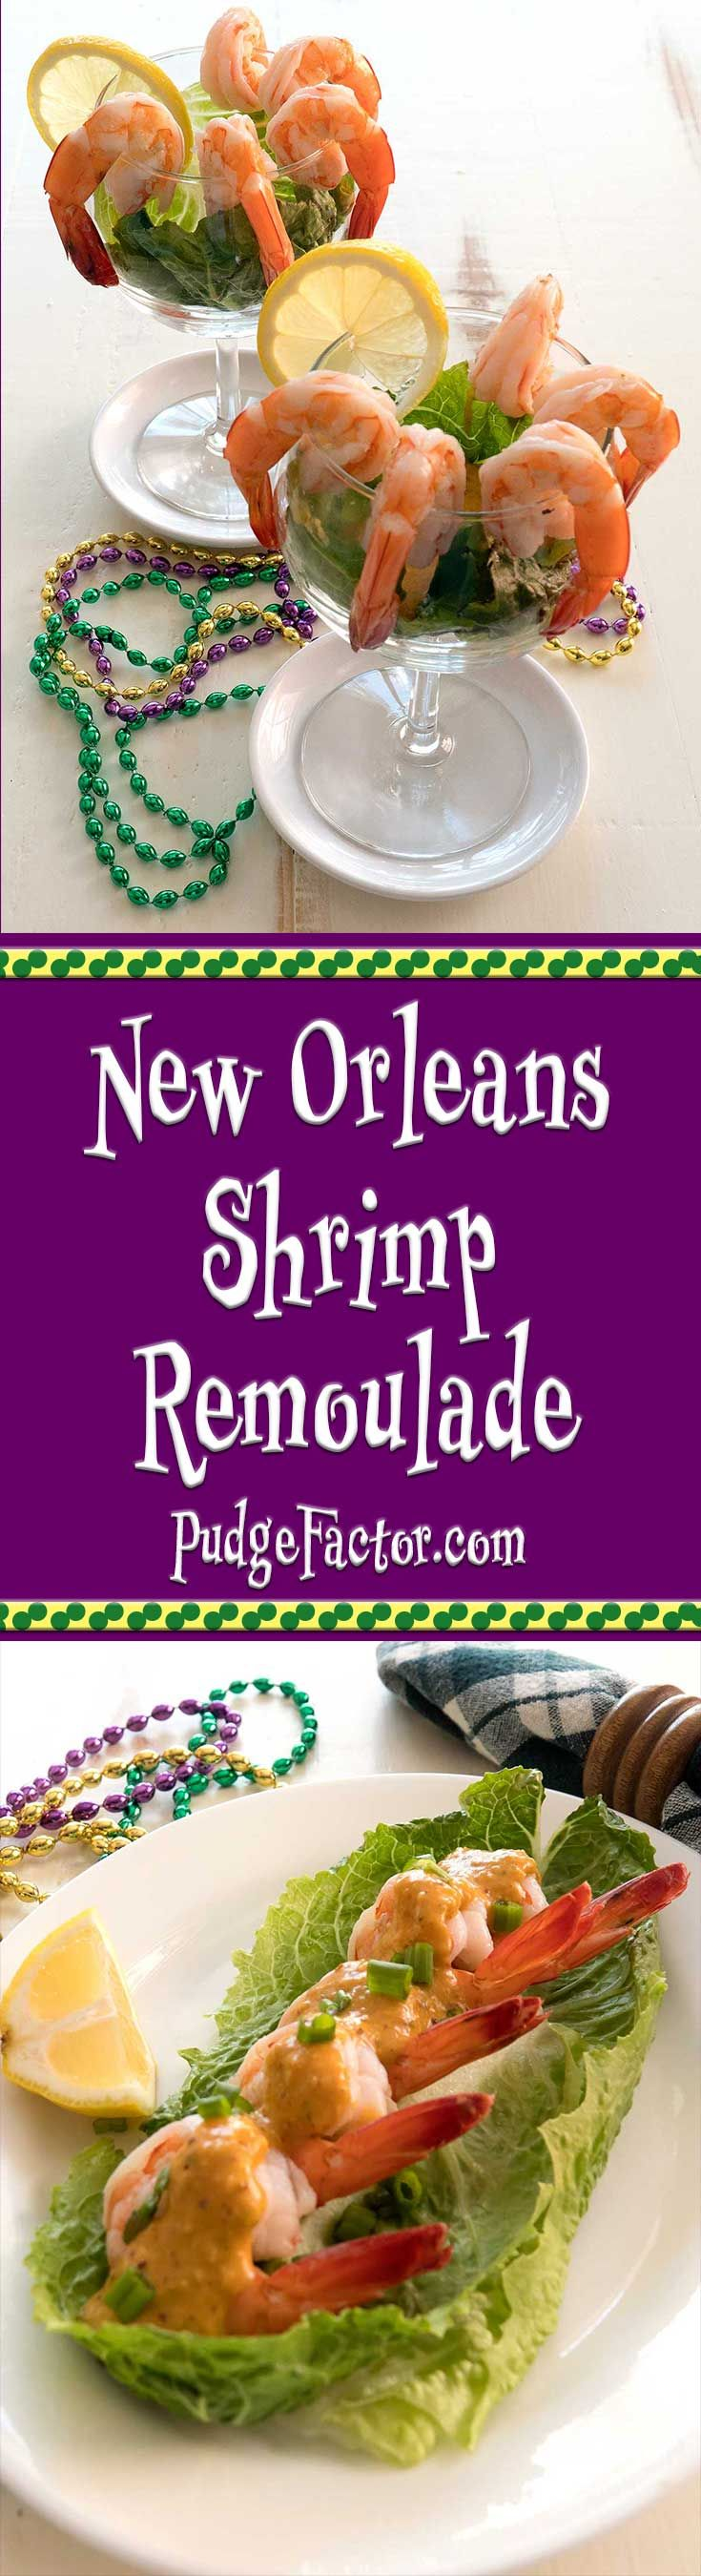 Shrimp Remoulade is a quintessential New Orleans dish composed of cold boiled shrimp with a spicy mustard-based dressing. via @c2king